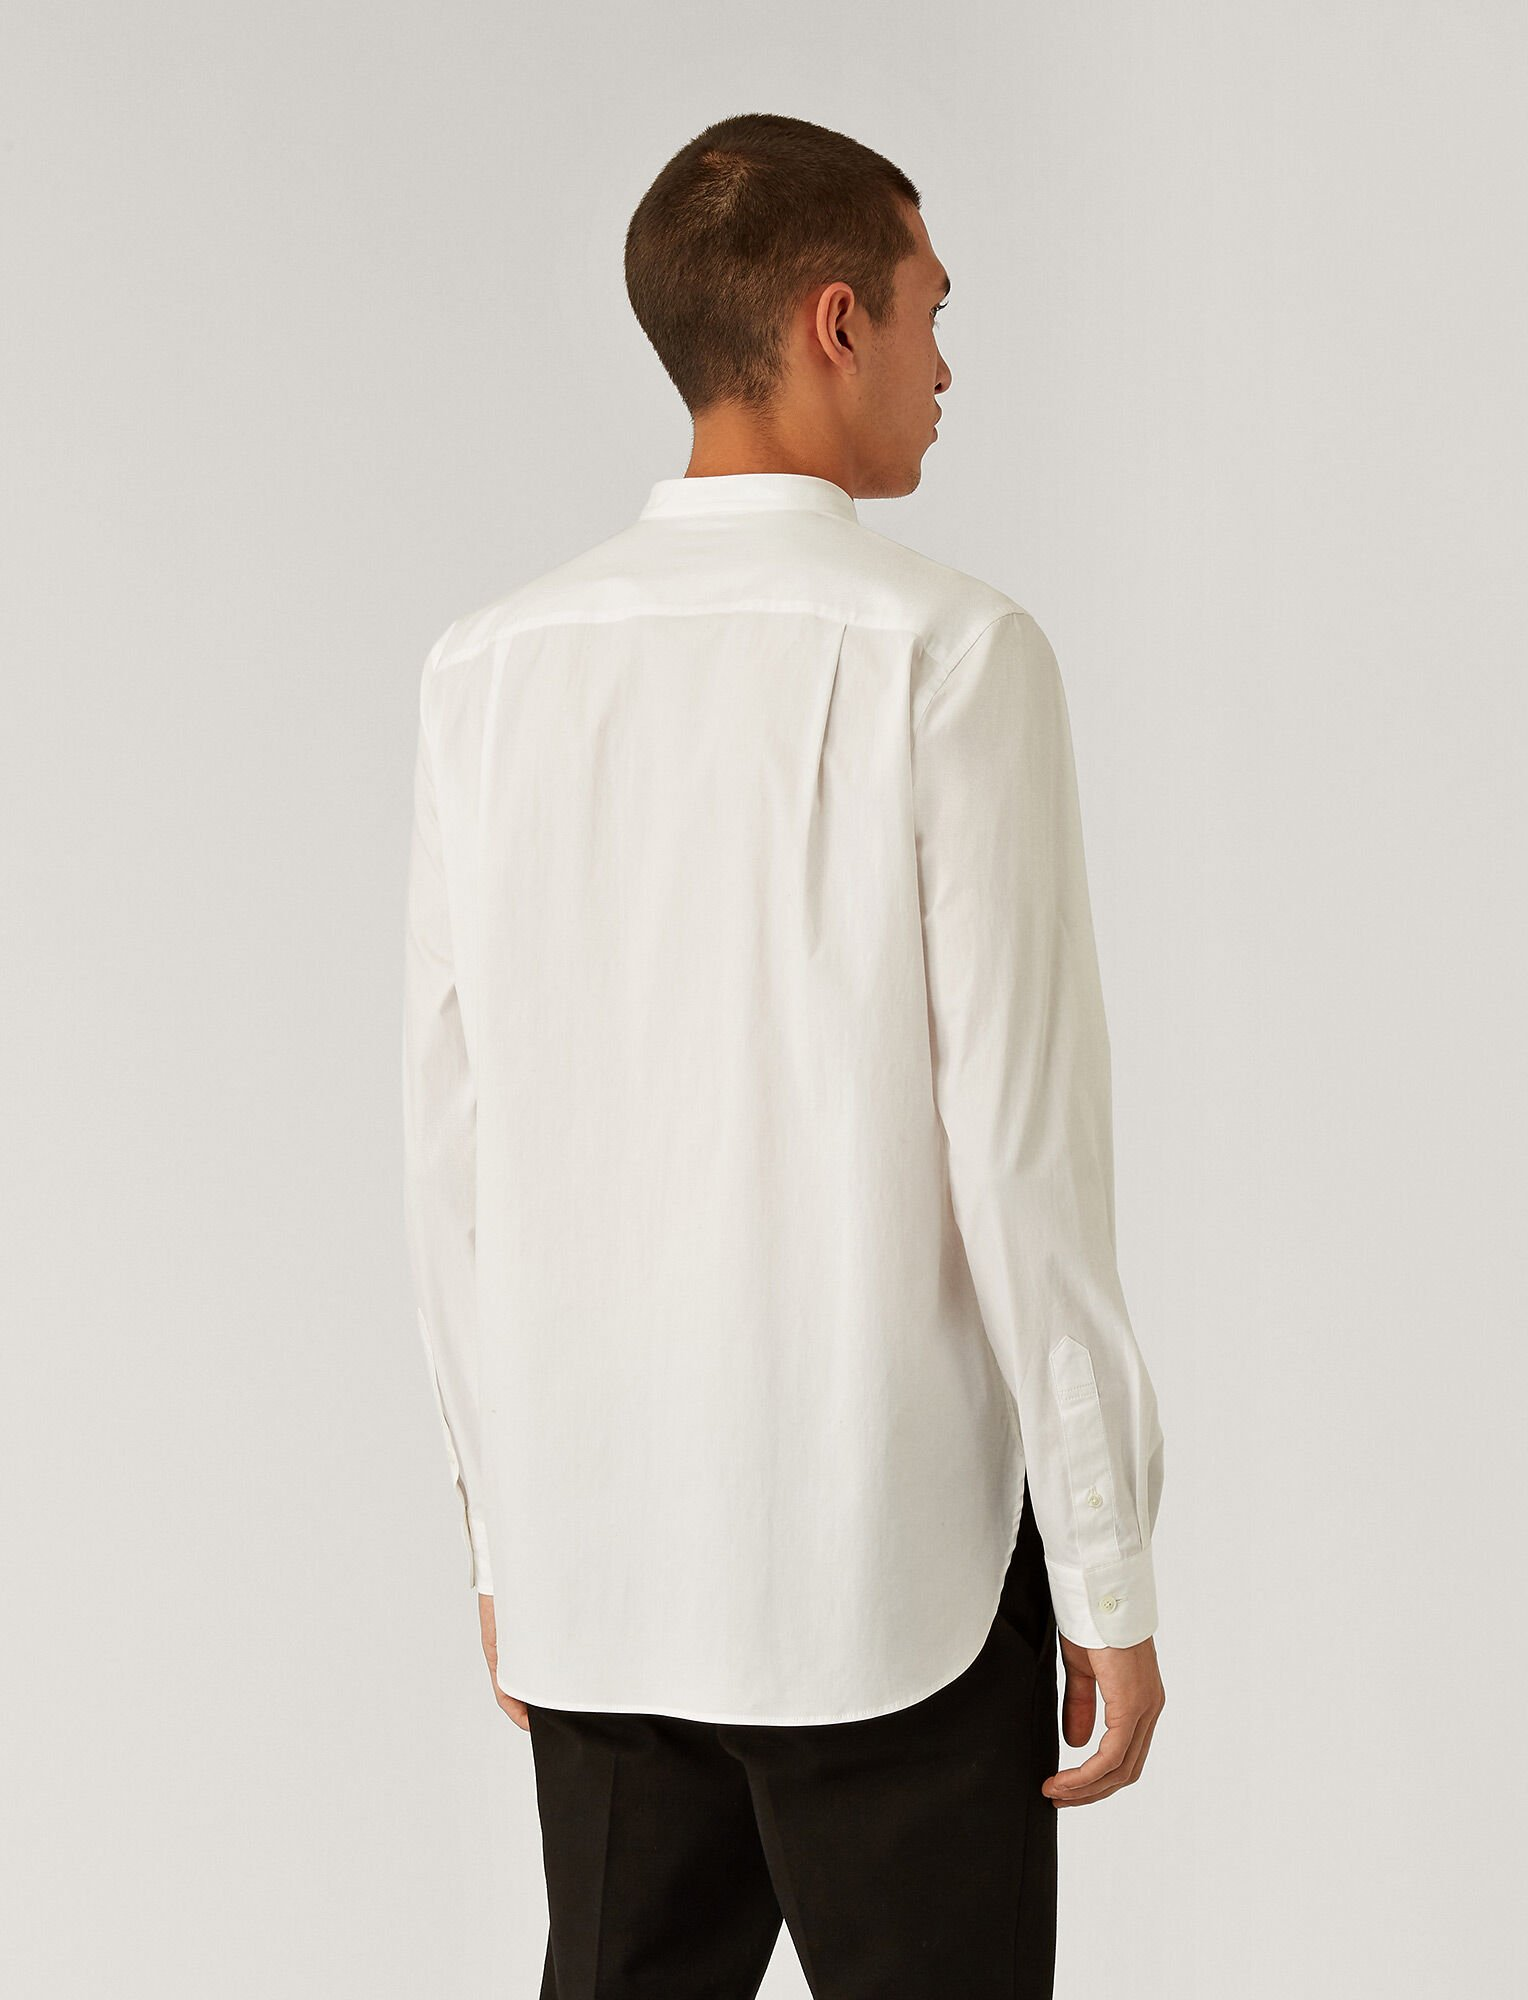 Joseph, Poplin Stretch Shirt, in White